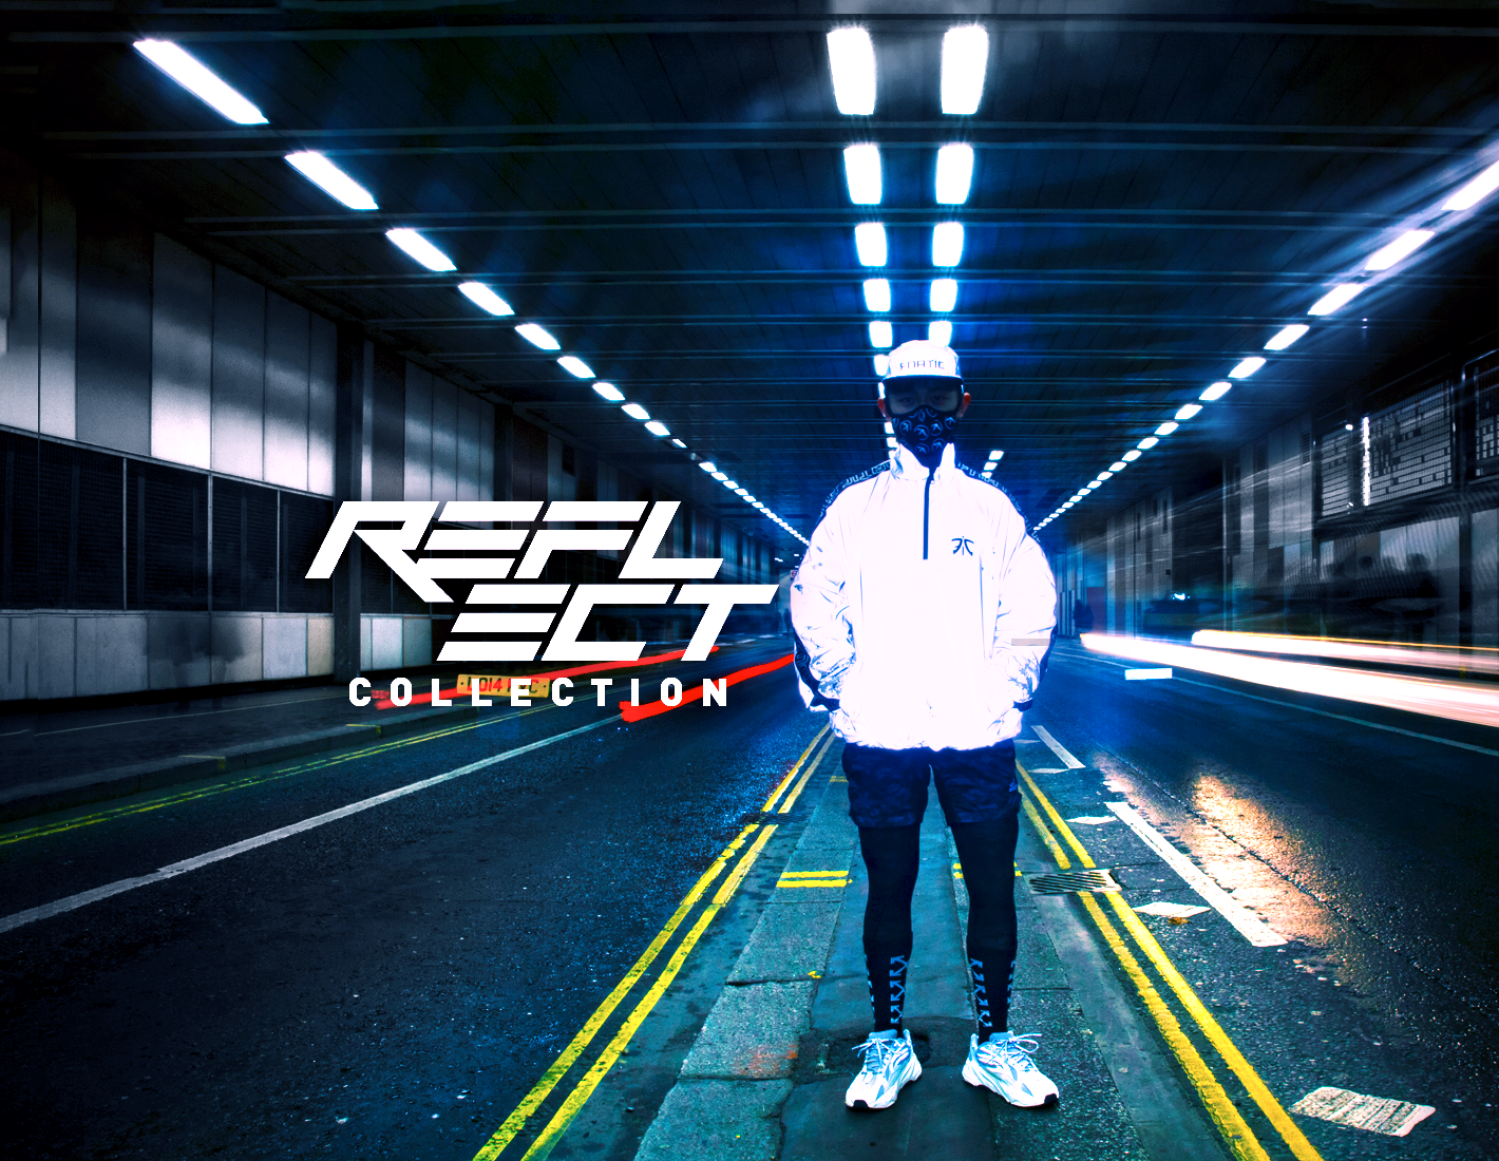 REFLECT COLLECTION